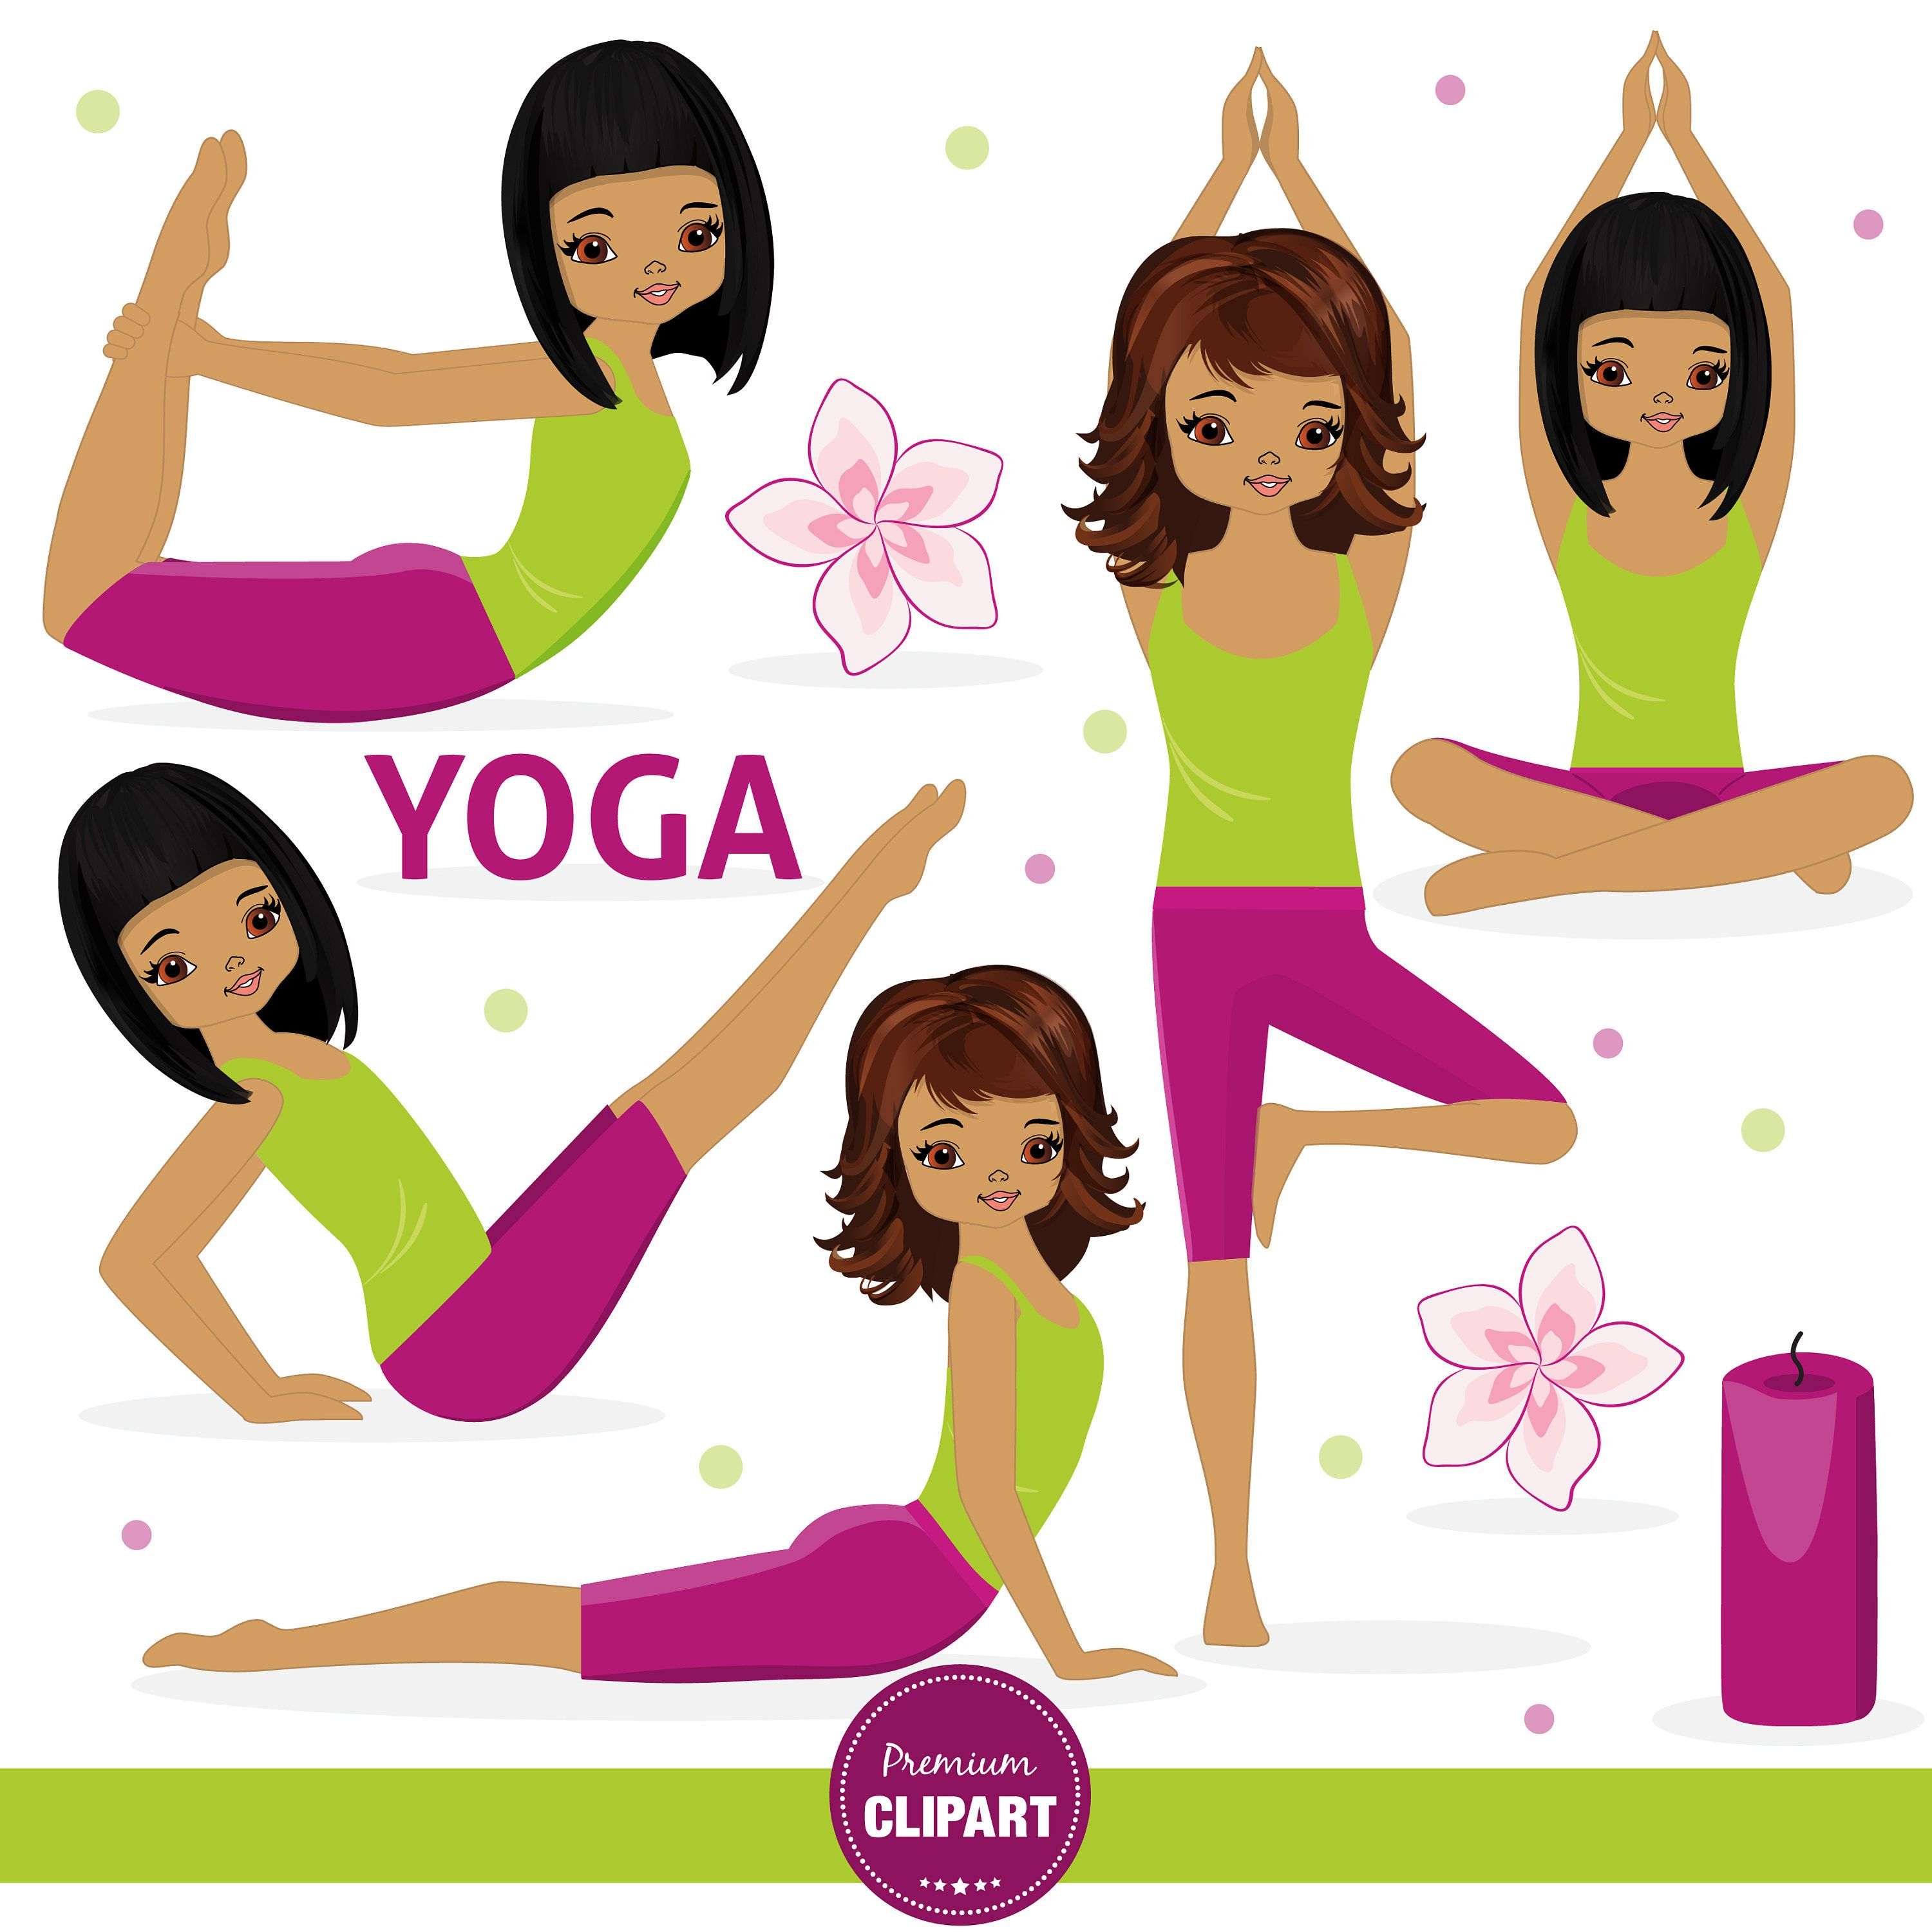 Yoga clipart clip library download African American Yoga clipart, Yoga images, Girl clipart, Yoga ... clip library download